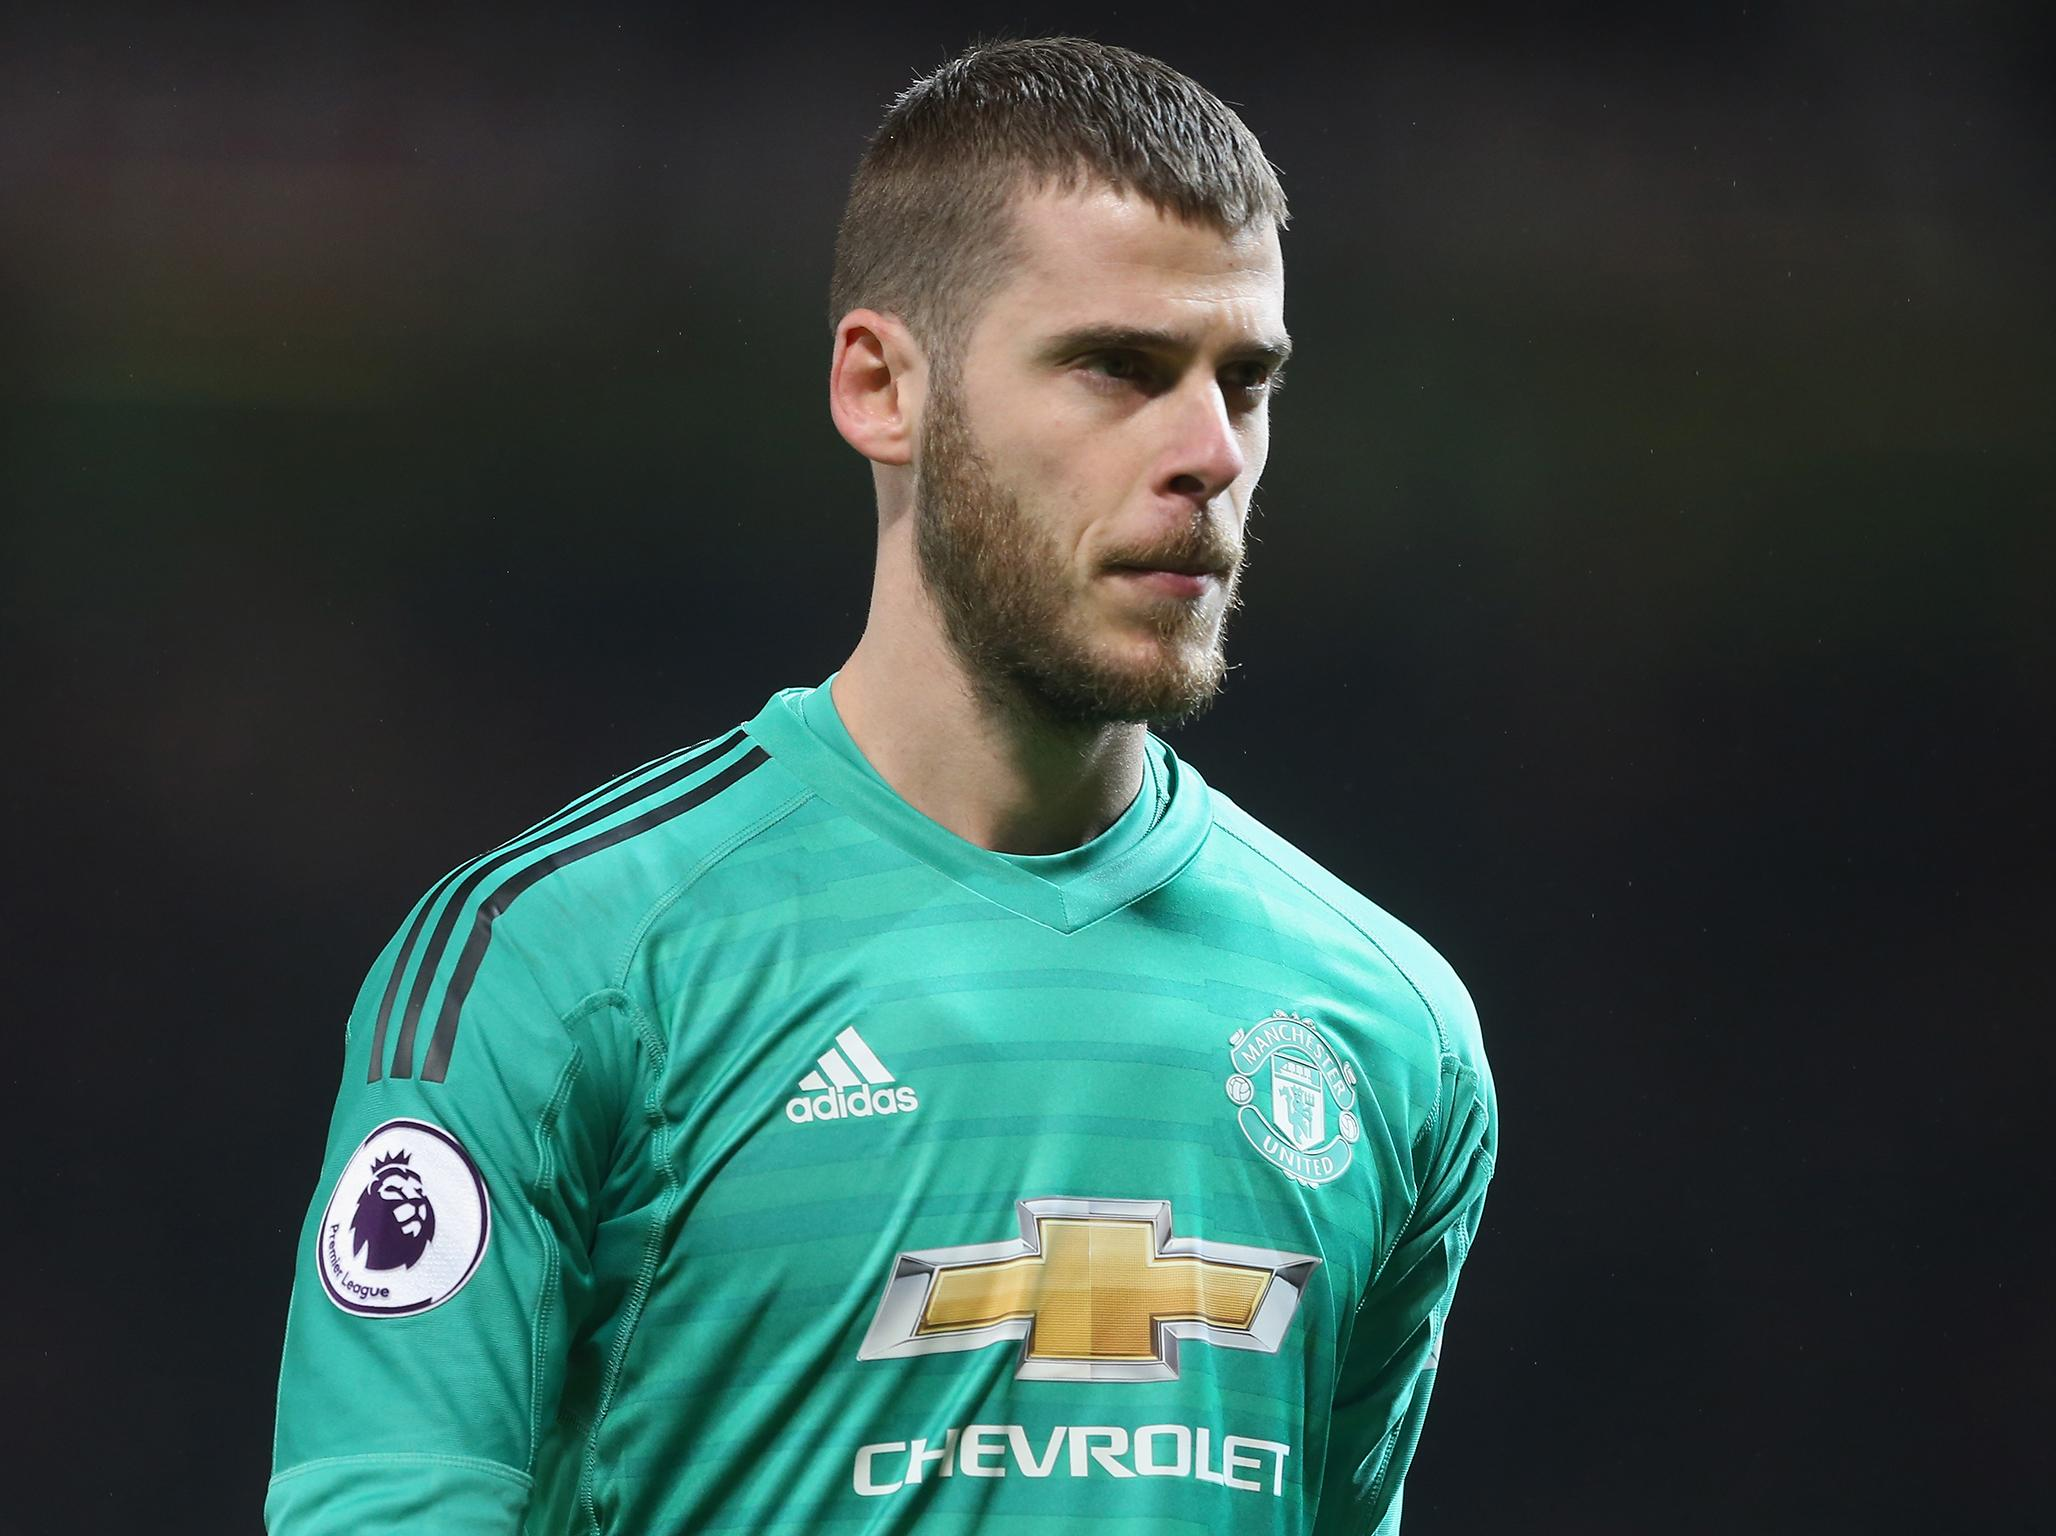 Manchester United Transfers: David de Gea makes wage demands, most recently Kalidou Koulibaly - The Independent